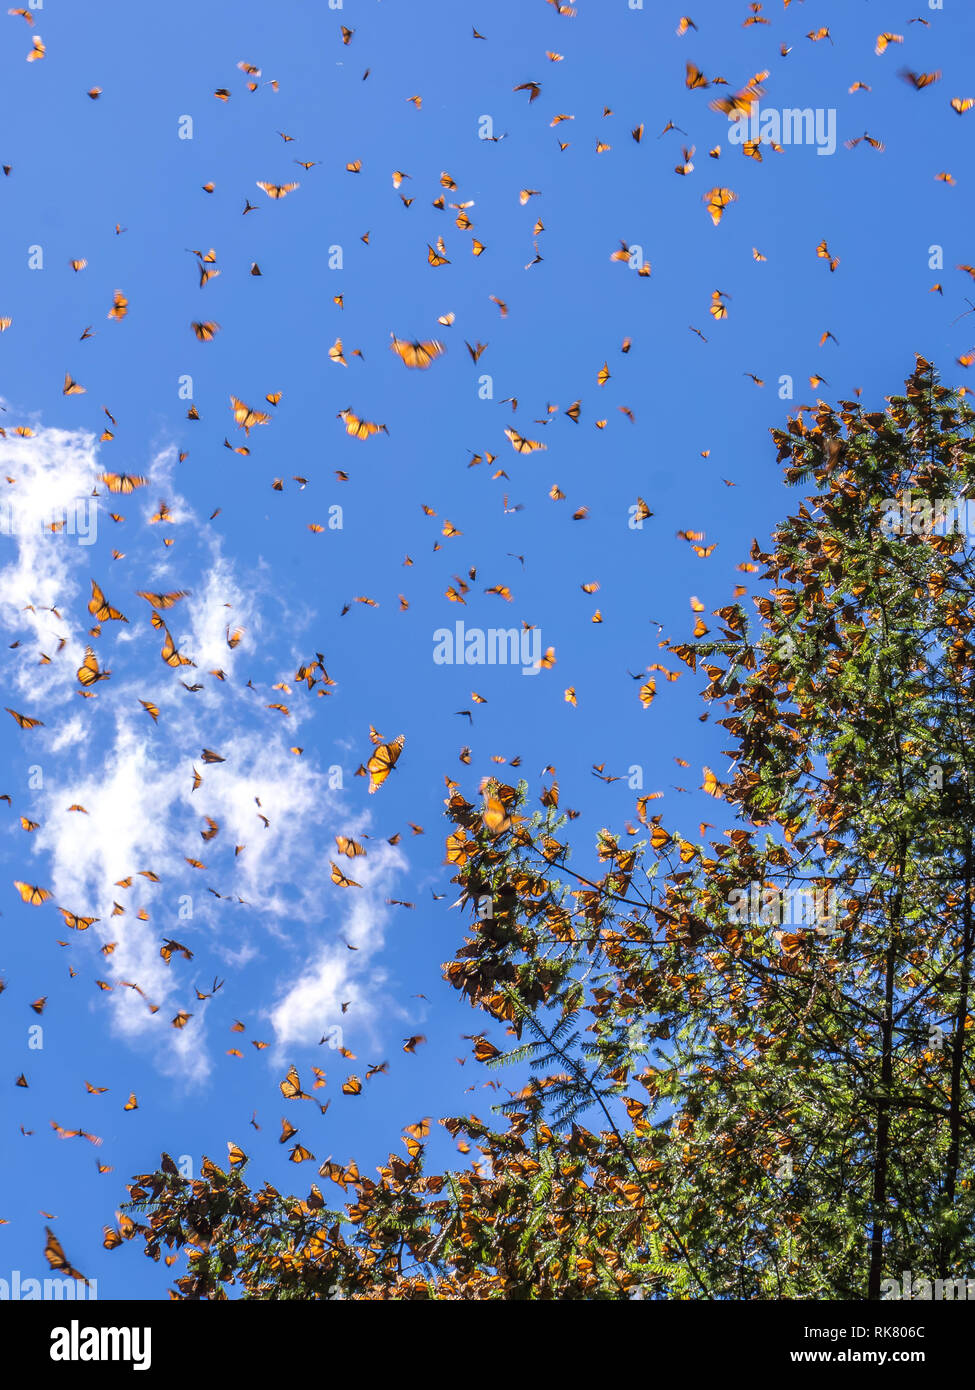 Monarch Butterflies on tree branch  with blue sky in background at the Monarch Butterfly Biosphere Reserve in Michoacan, Mexico - Stock Image